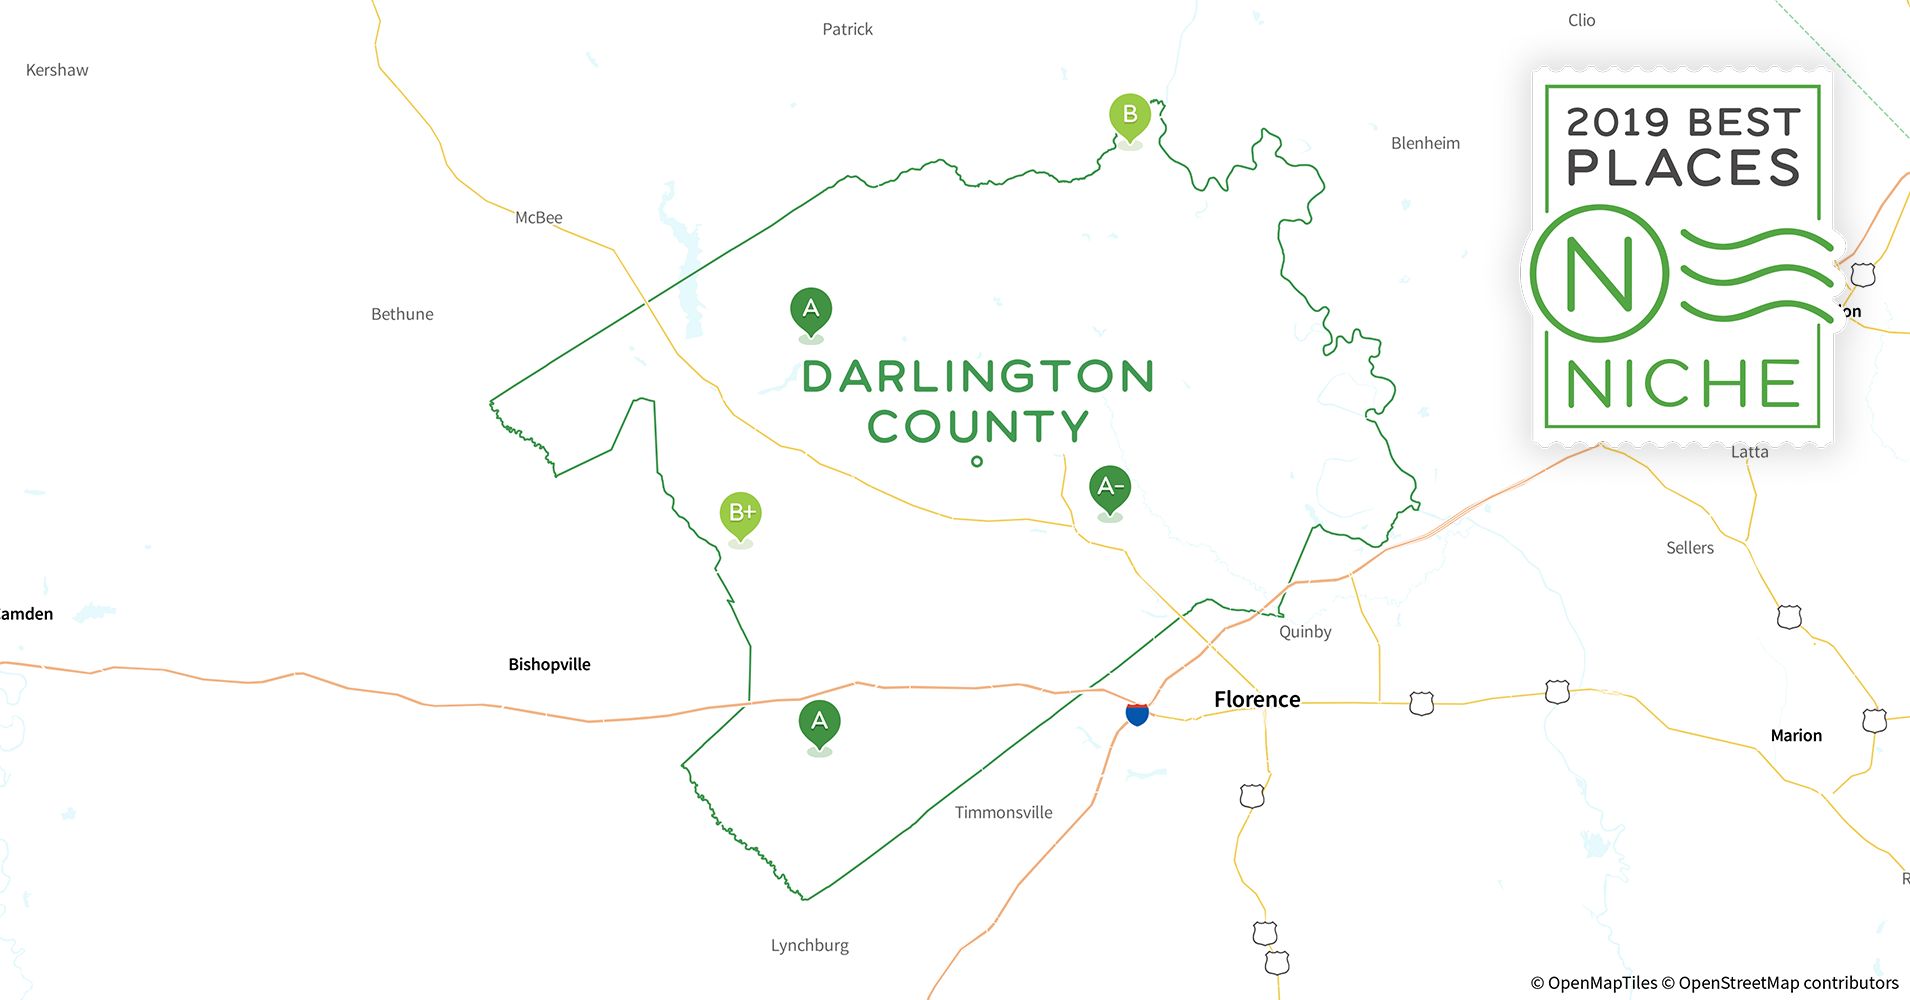 2019 Best Places to Live in Darlington County, SC - Niche Darlington County Tax Map on